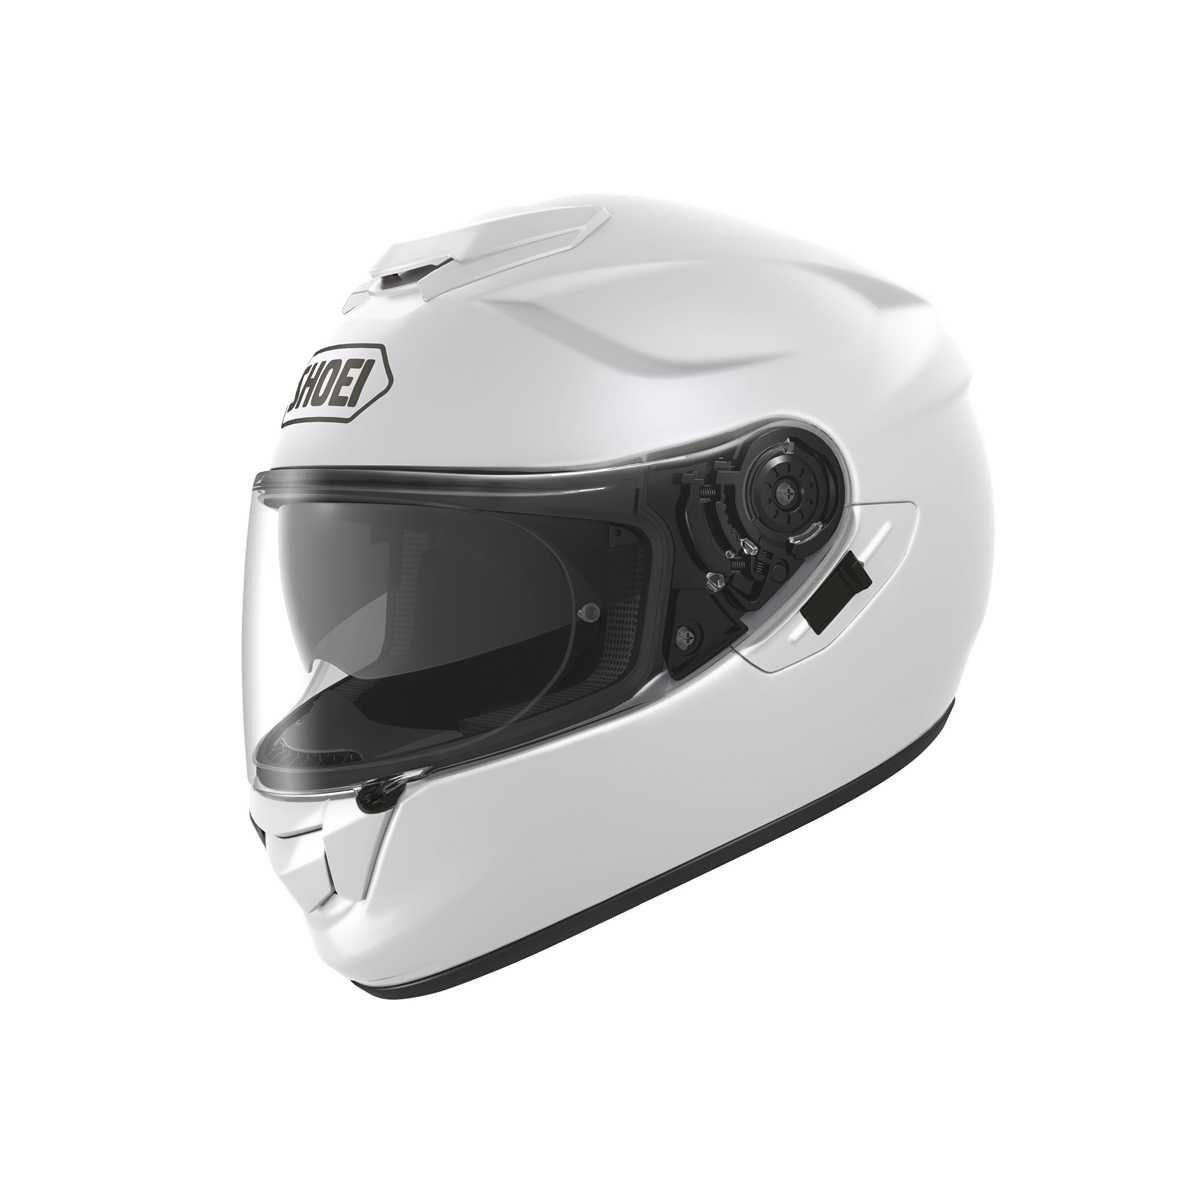 Amazon.com: Shoei GT Air DVS Full Face Touring Motorbike Motorcycle Helmet - Gloss White XS: Automotive